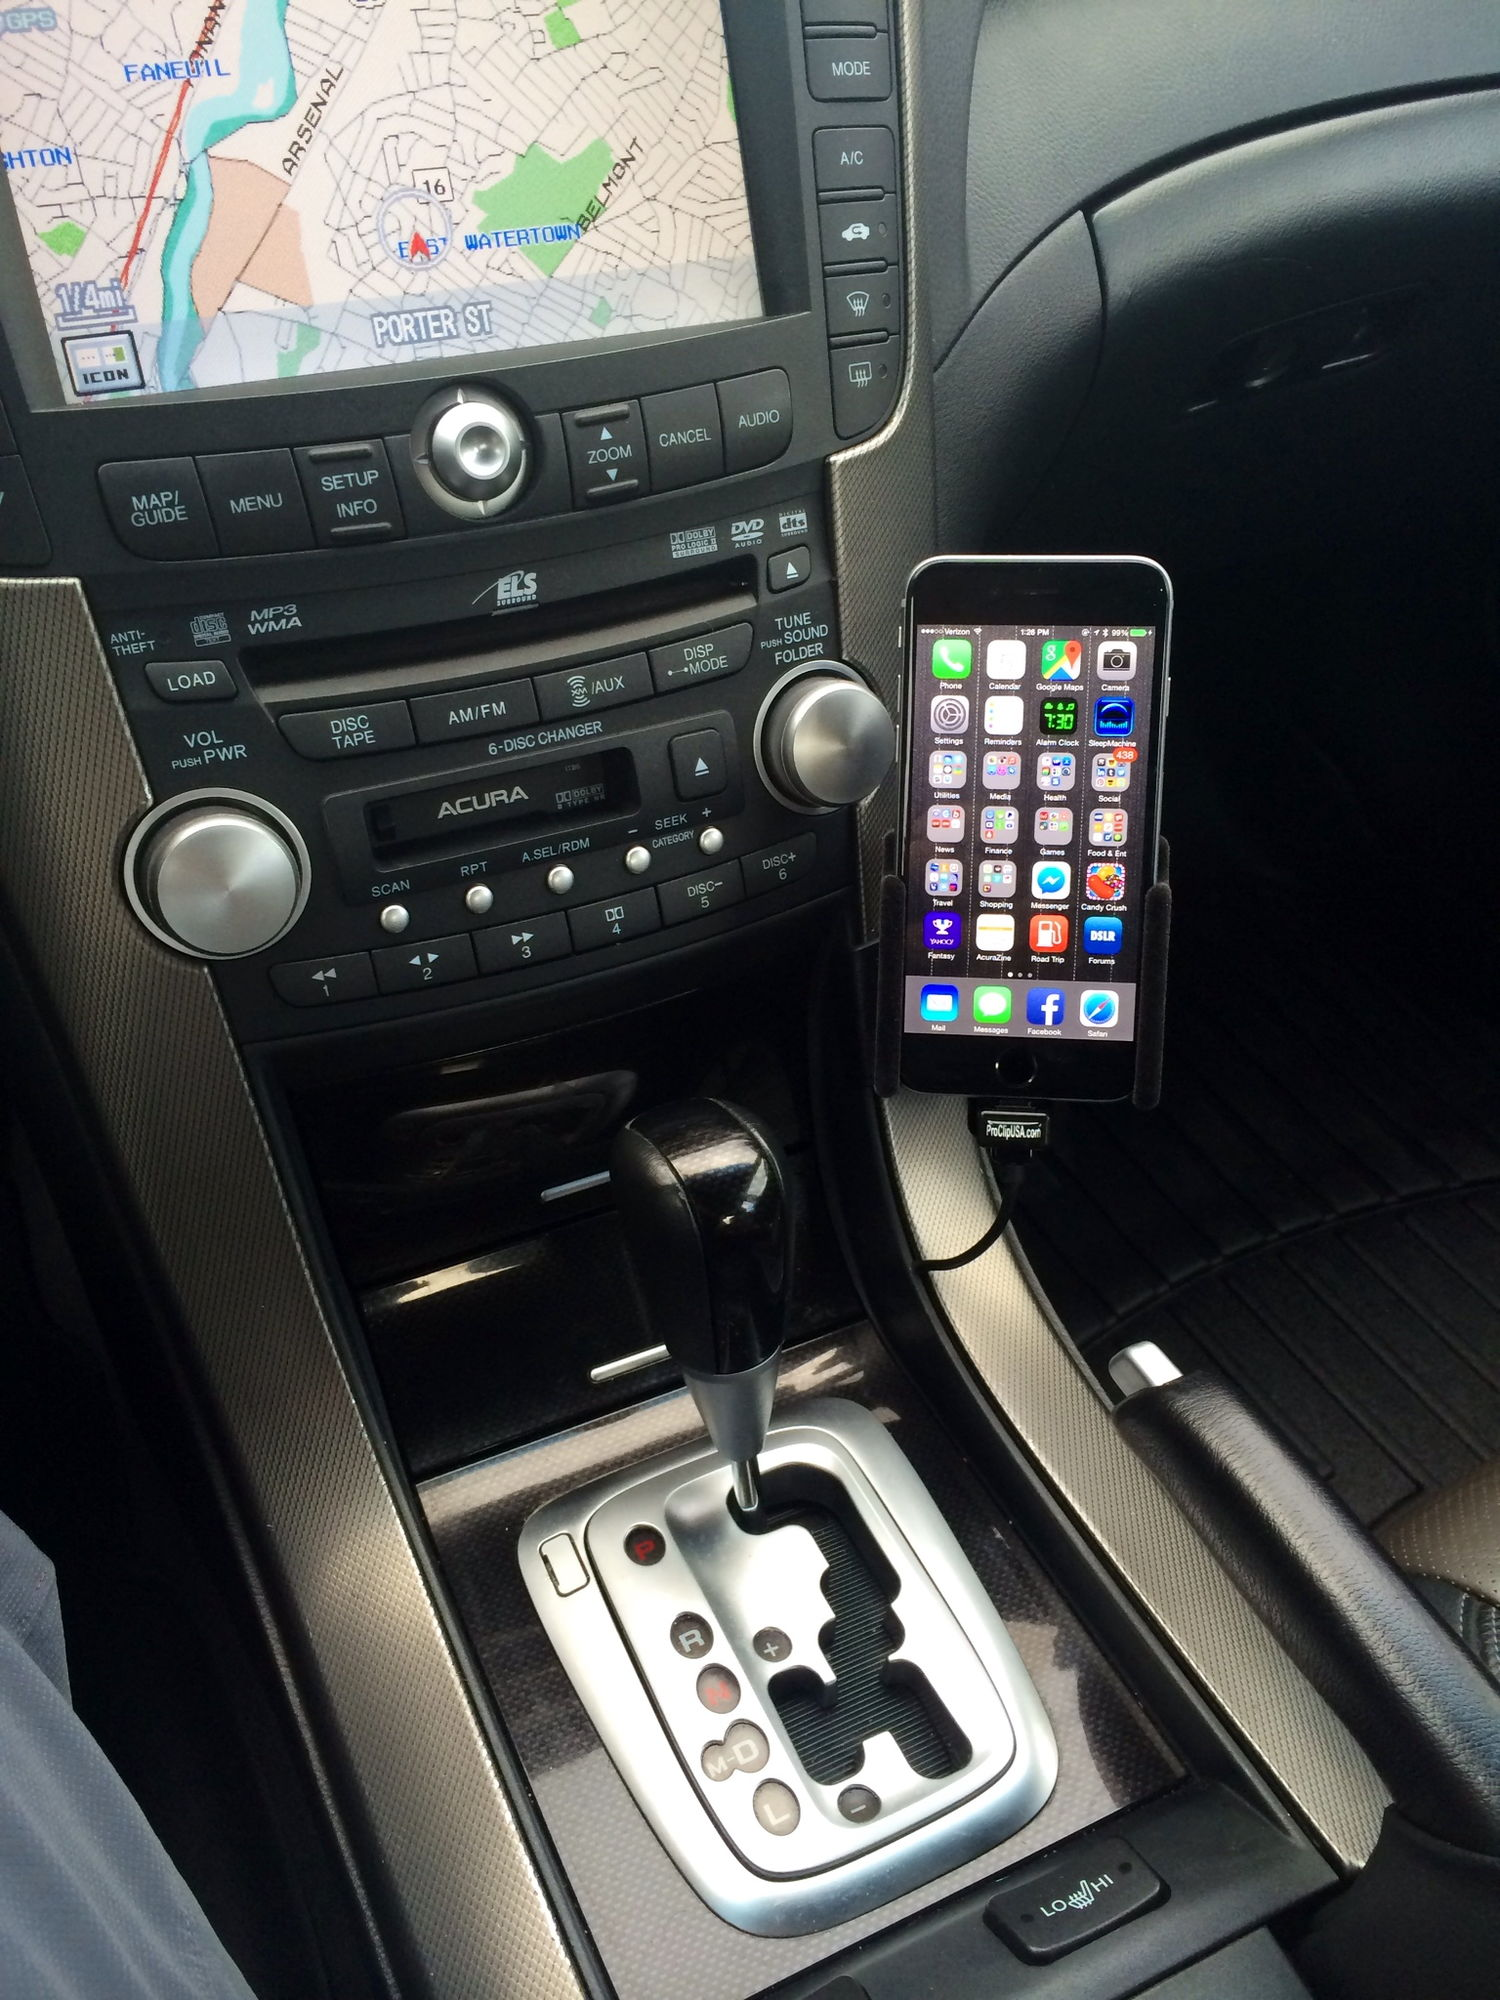 Acura Tl 2016 Price >> Best mount for iPhone? - AcuraZine - Acura Enthusiast Community